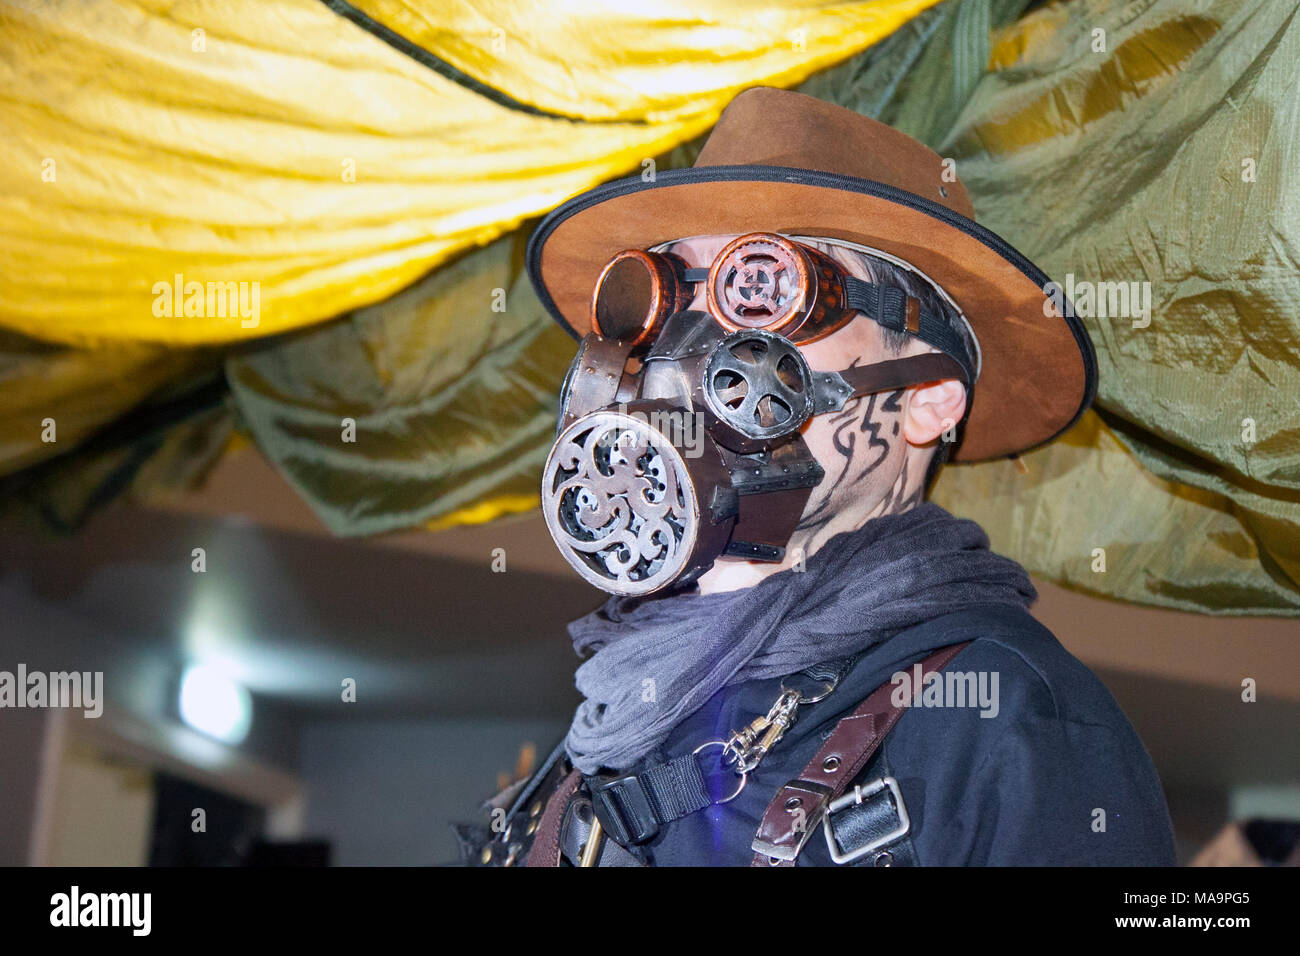 Manchester, UK, 31th March 2018. TimeQuake Steampunk Festival, Weekend at the Asylum, the Planet's largest steampunk festival of Scavengers where a City becomes Wasteland Costumes Capital for four days. The Victorian Steam punk Society, teamed up with Manchester's Bowlers Exhibition Centre and the organisers of For the Love of Sci Fi to create a Cosplay  Expo. Credit: MediaWorldImages/AlamyLiveNews - Stock Image